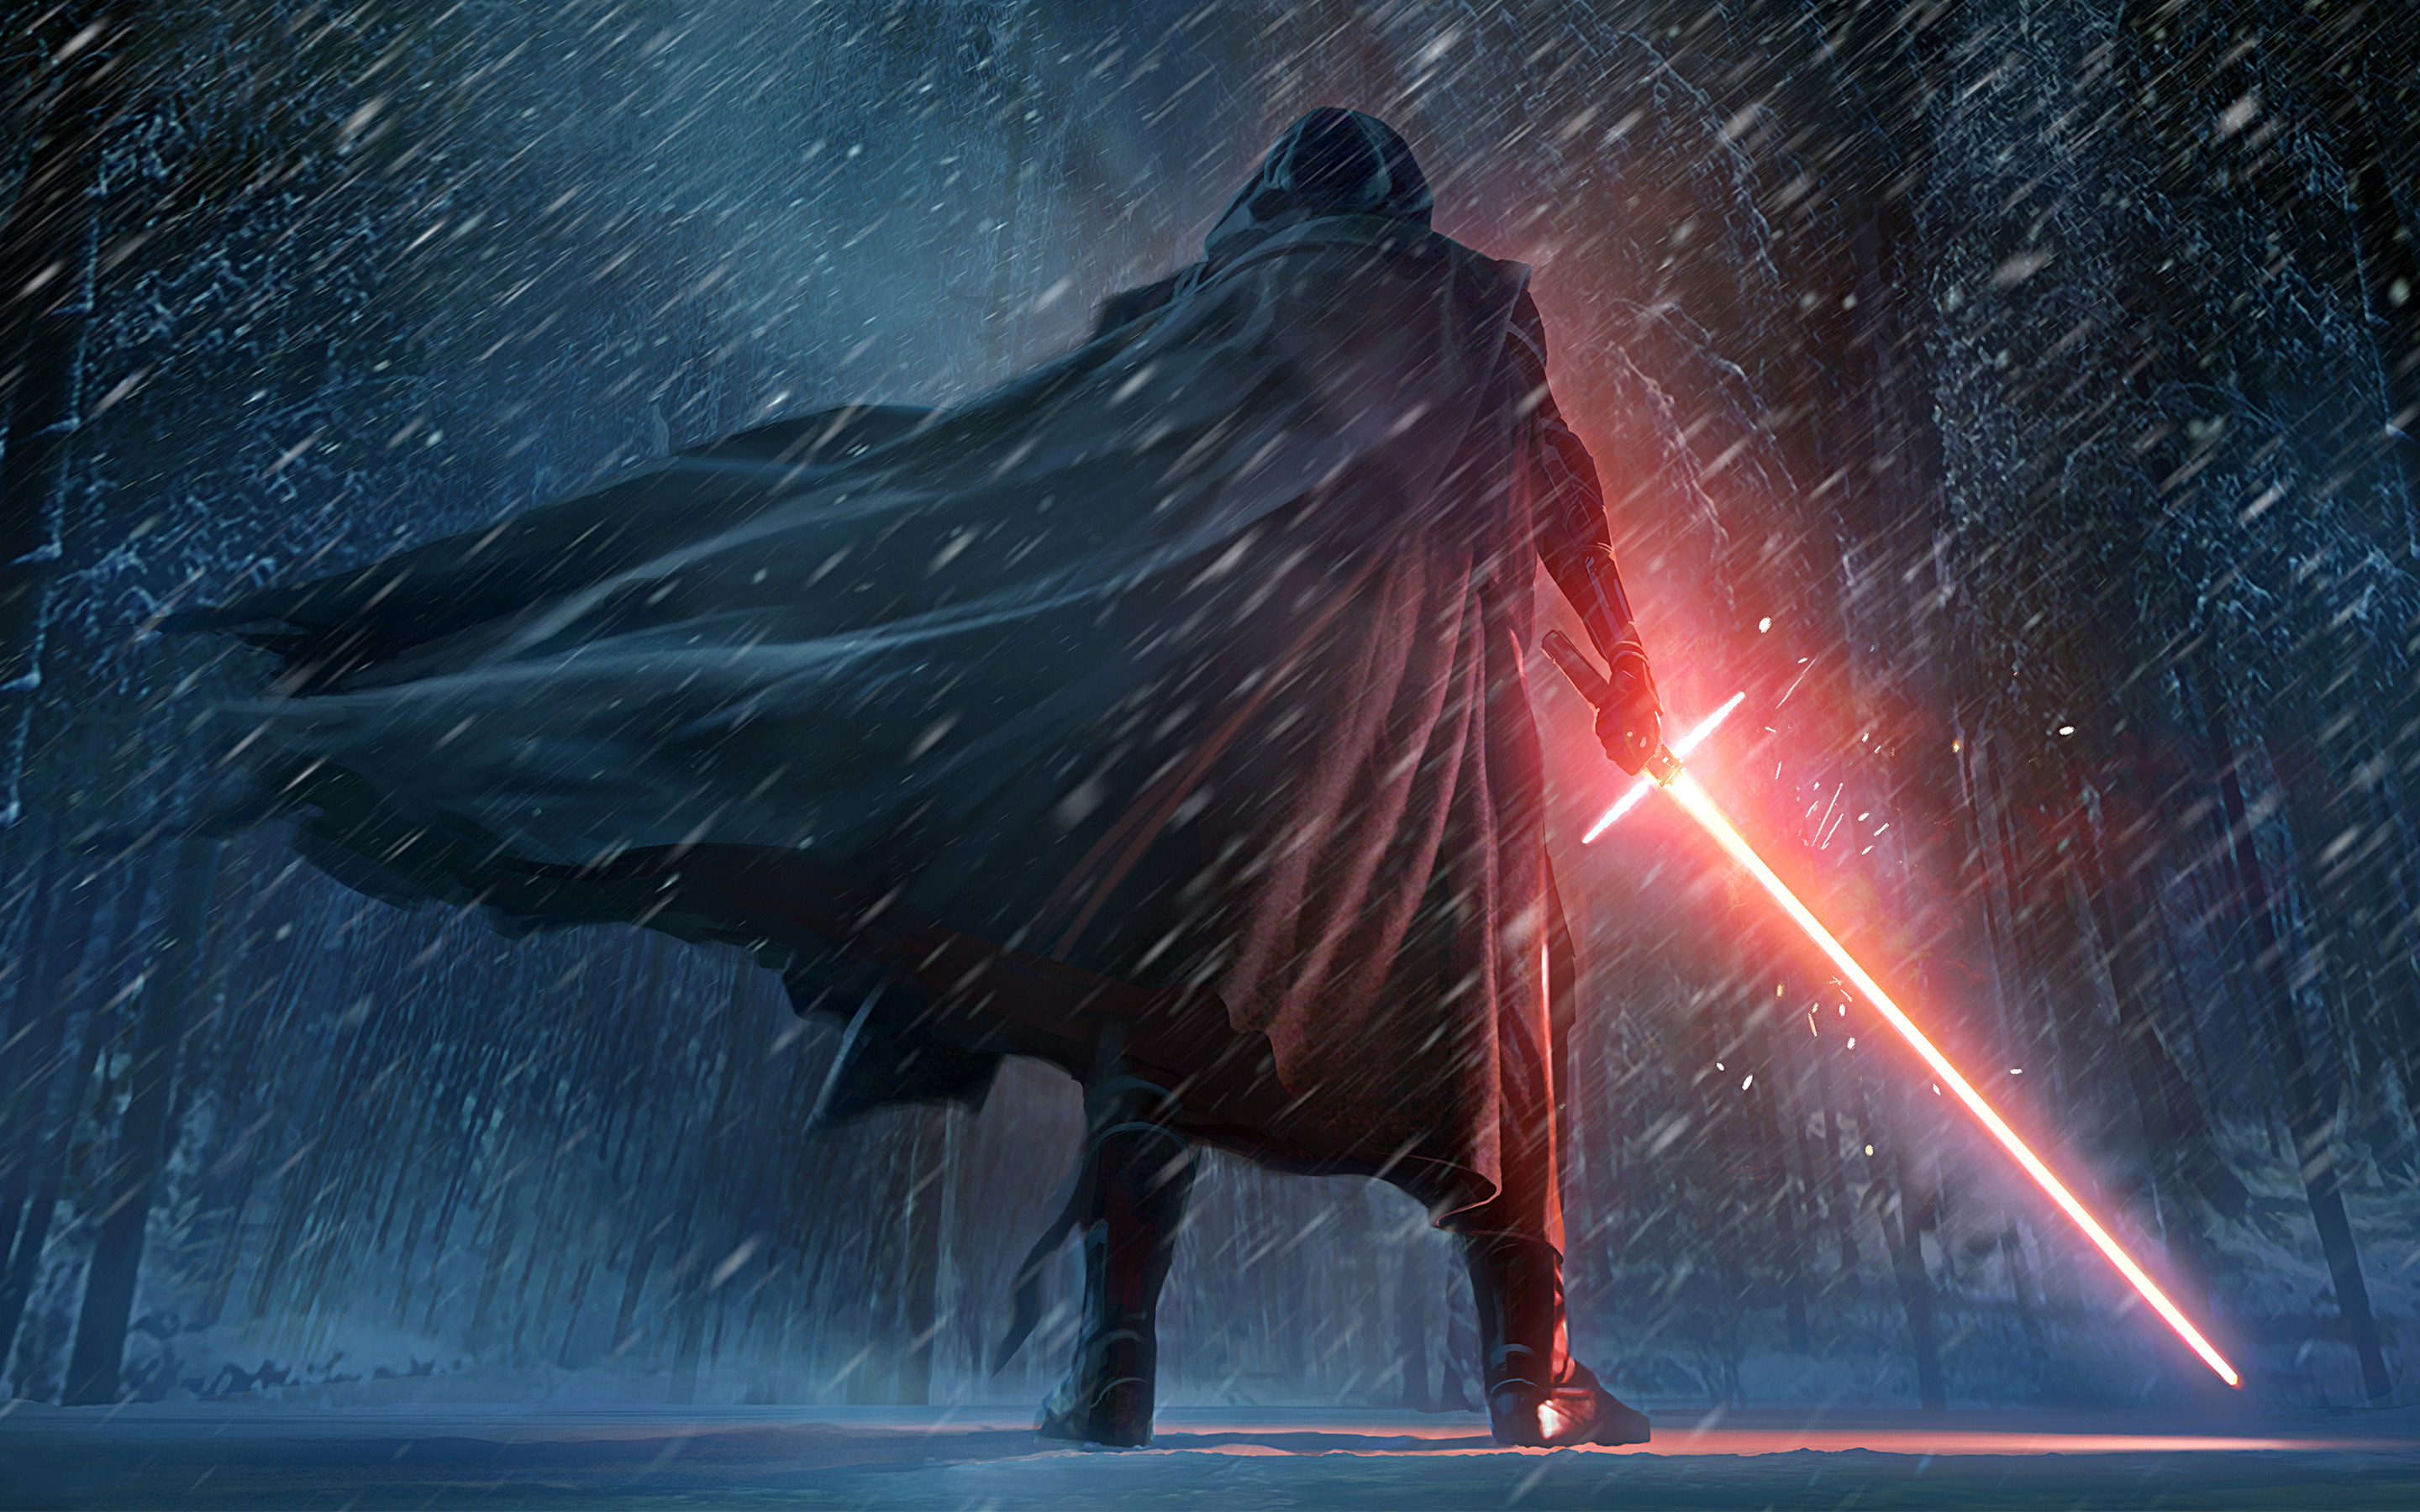 Star Wars The Force Awakens Wallpapers in Best px Resolutions